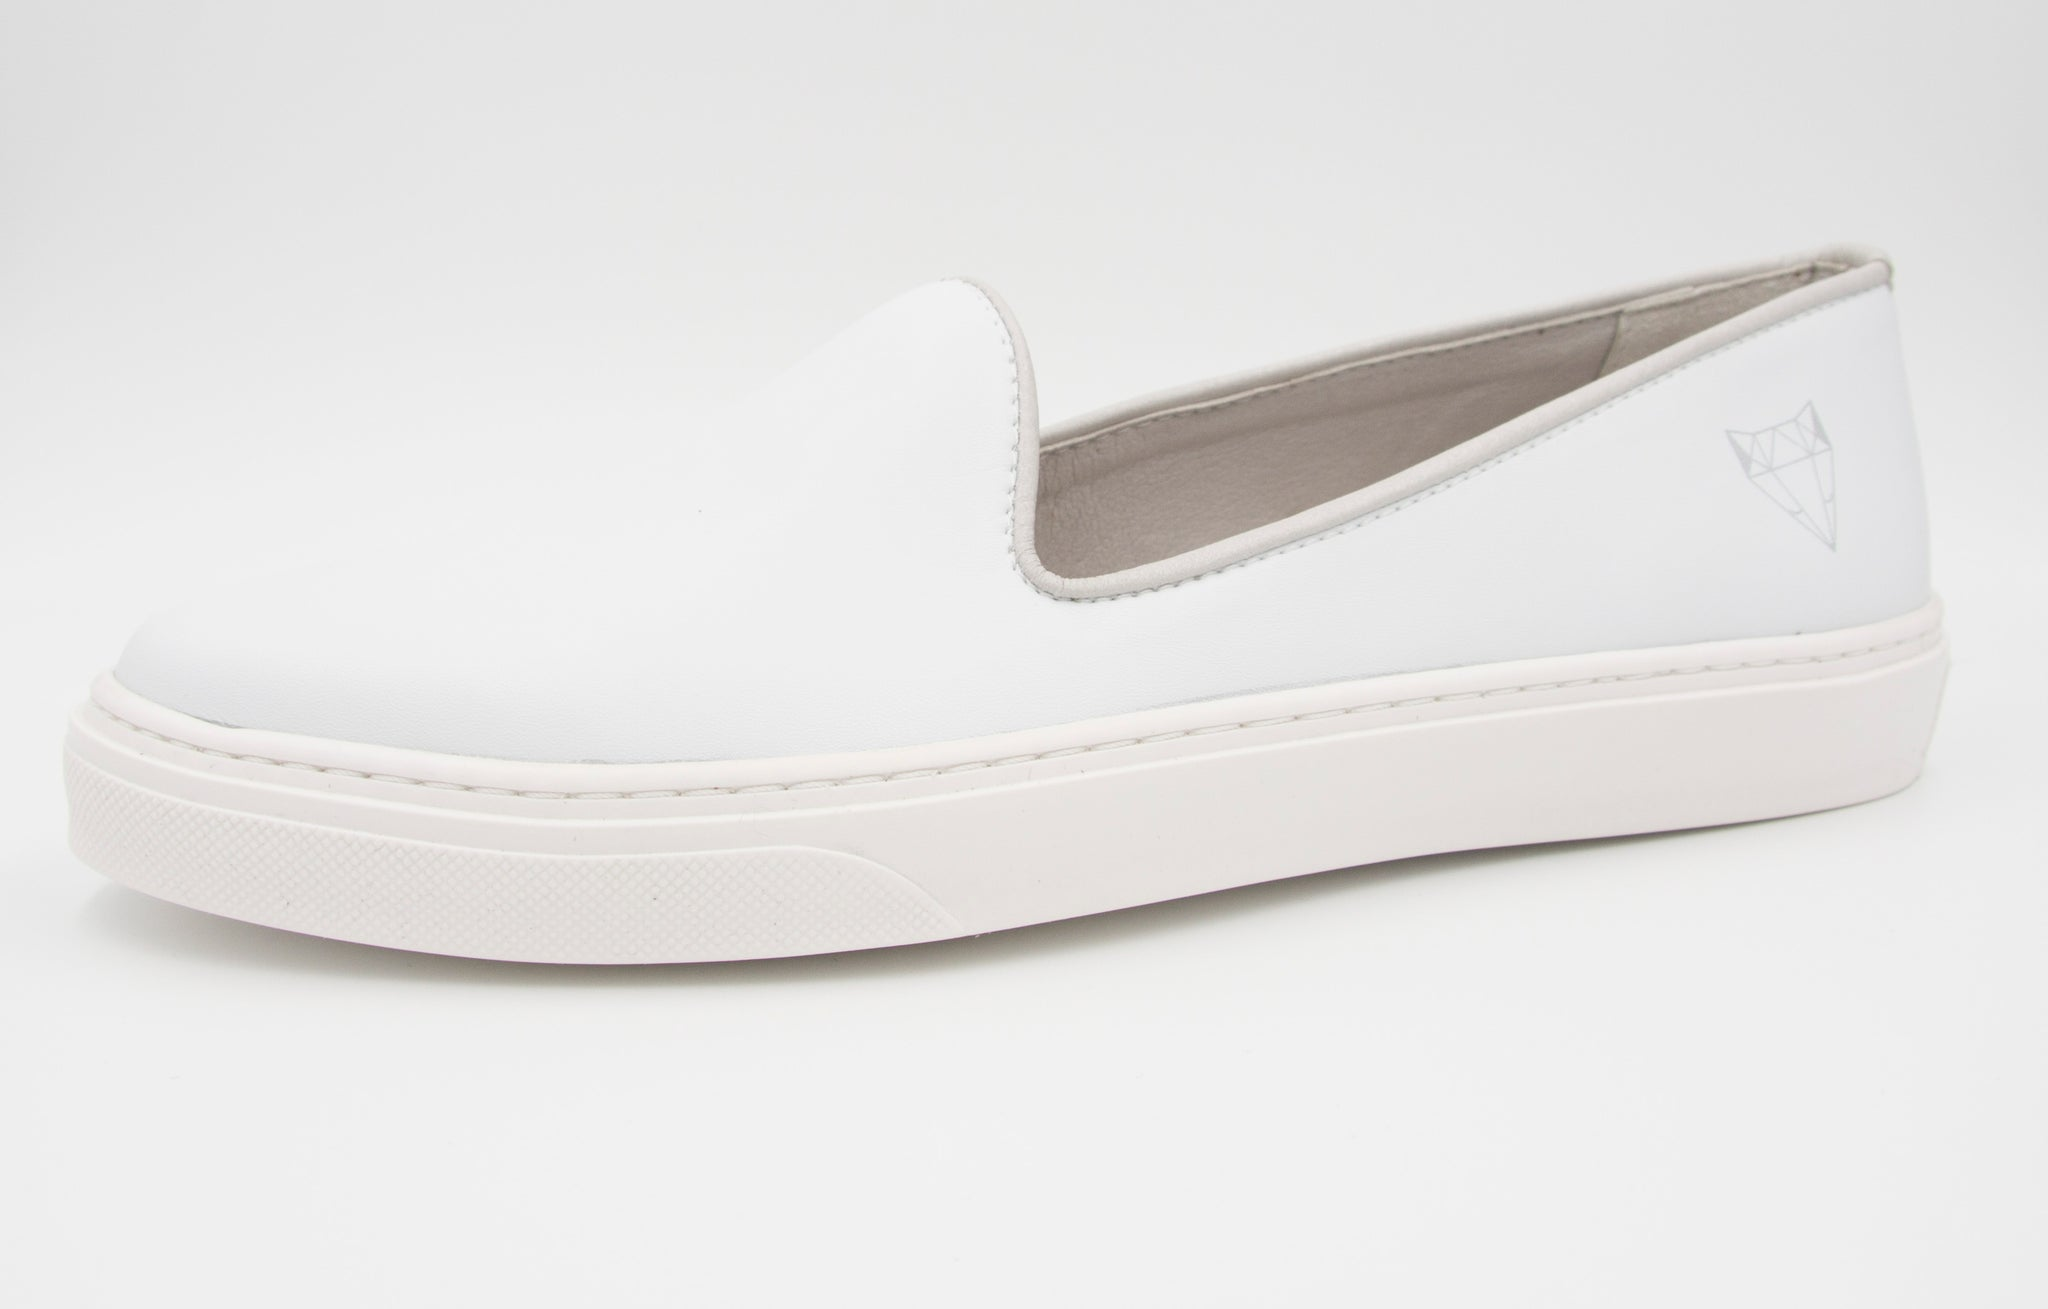 Vegan white cruelty-free slippers made in Paris, all materials come from within the EU